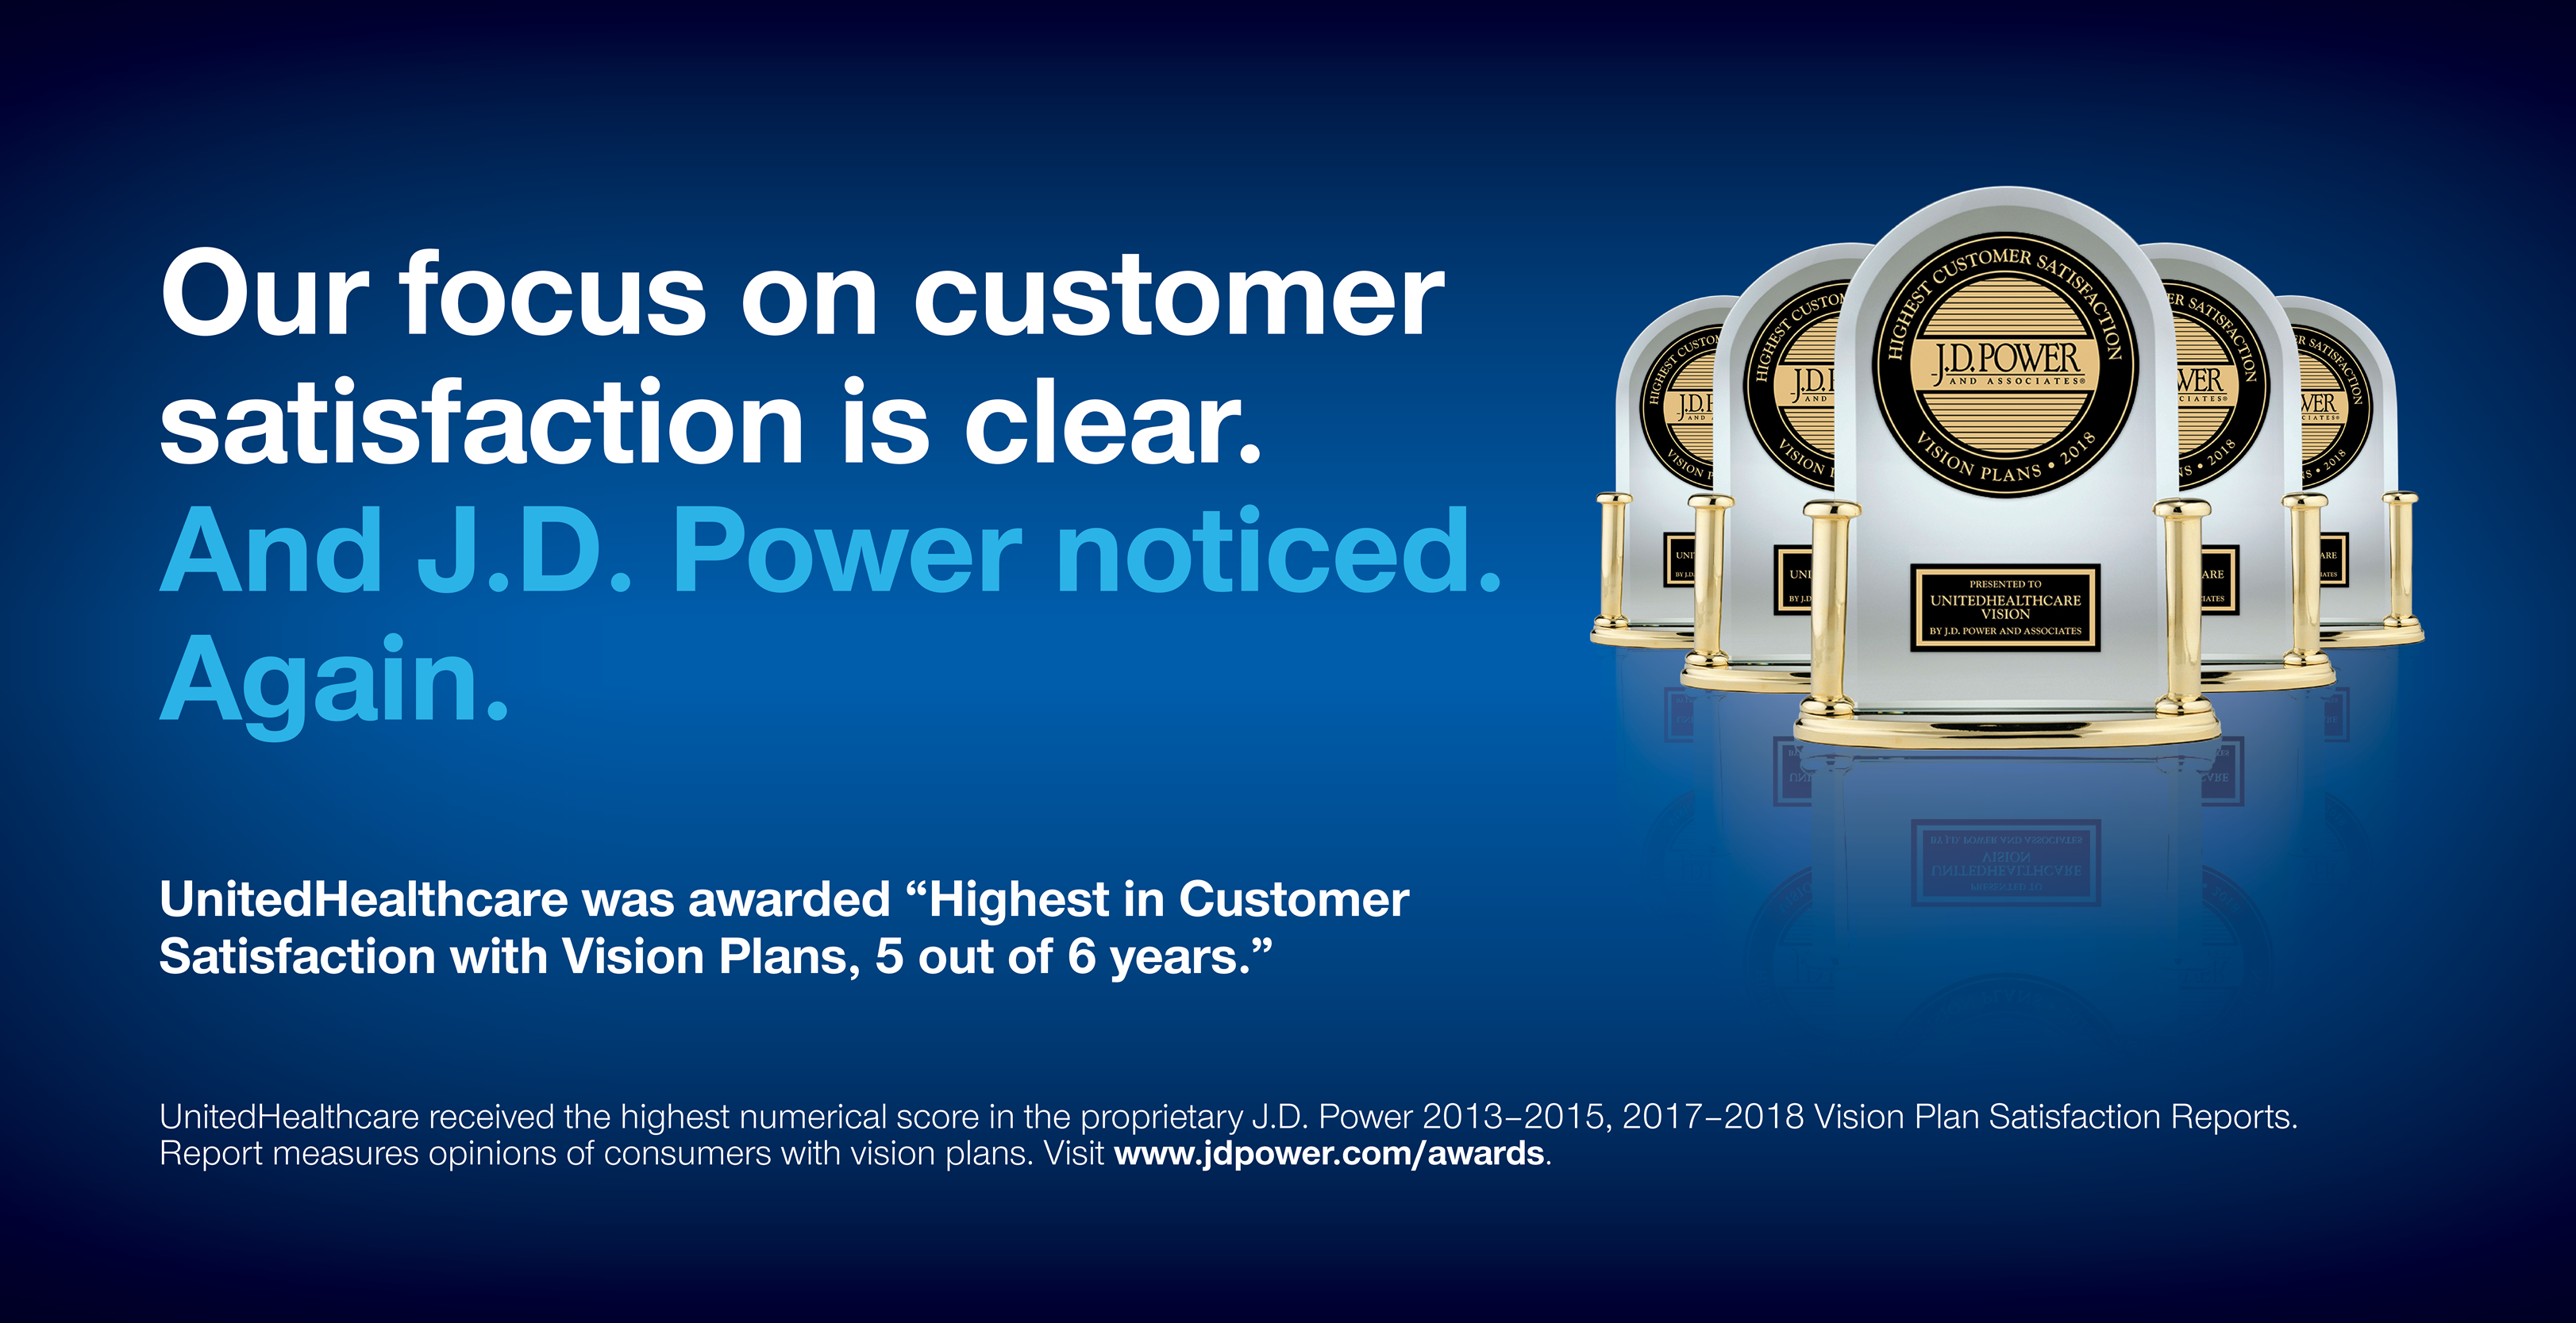 Our focus on customer satisfaction is clear.  JD Power noticed again.